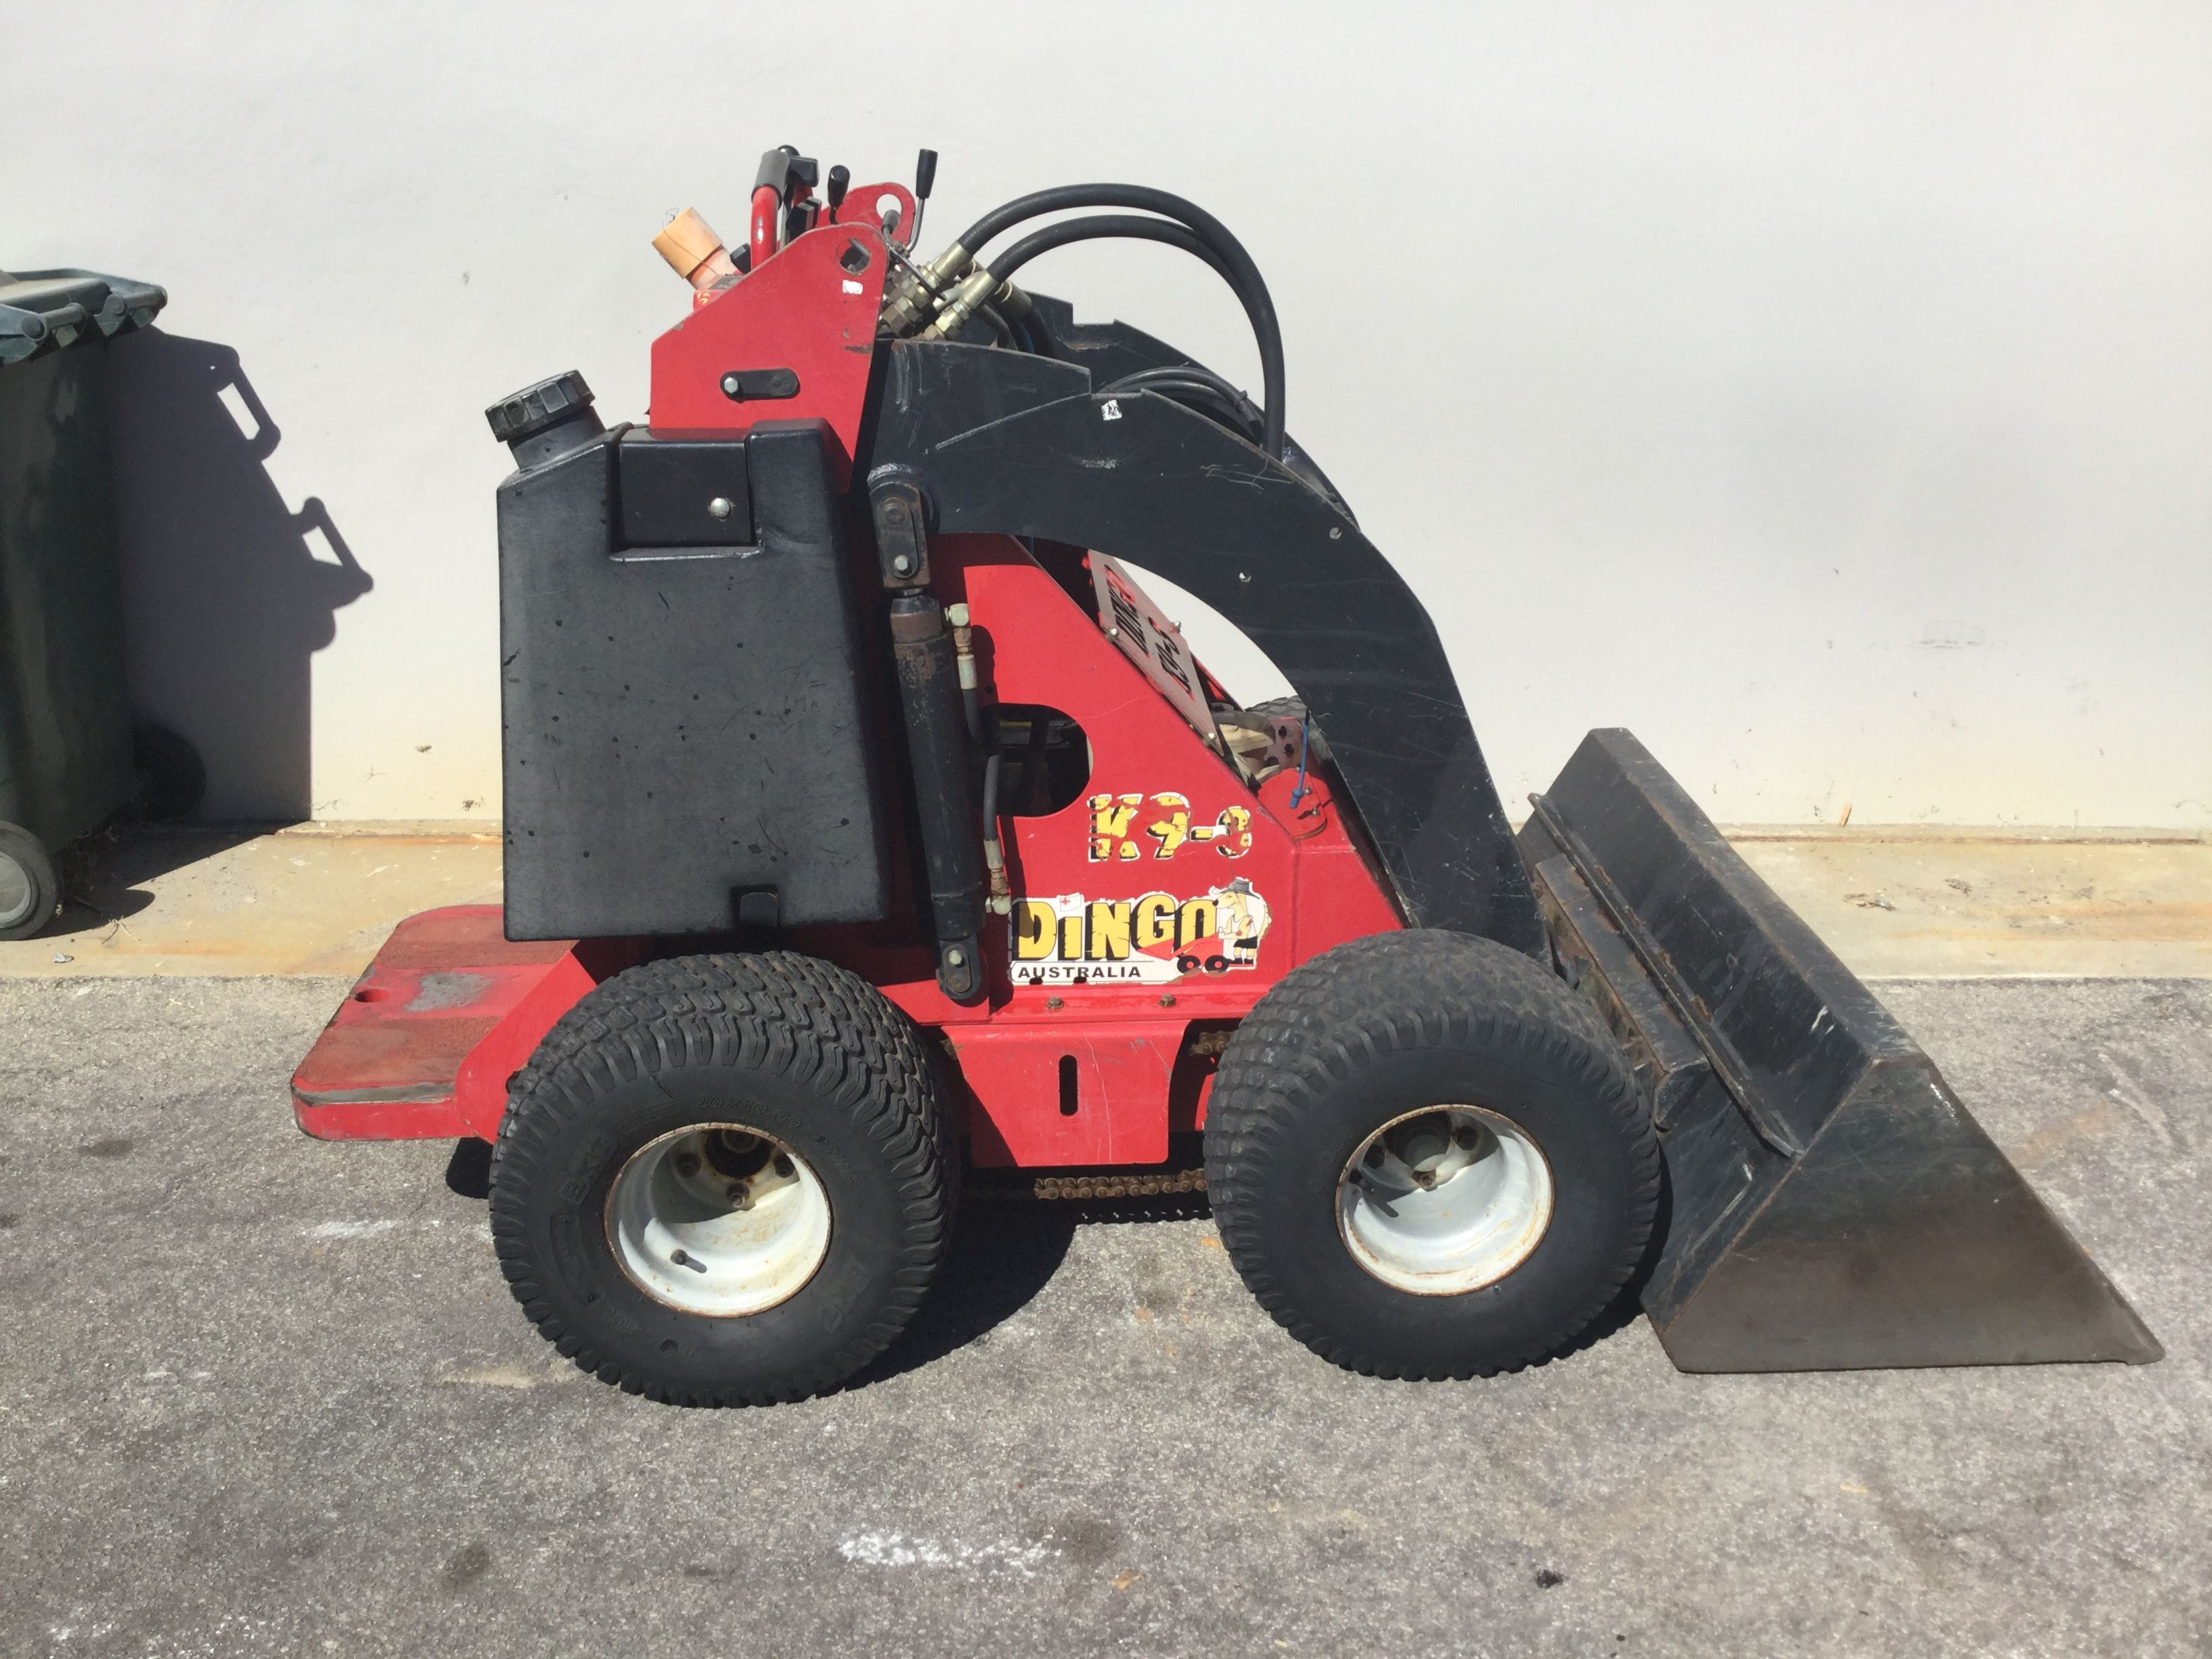 Mini Digger Wa Offer Mini Diggers For Hire Parts And Service